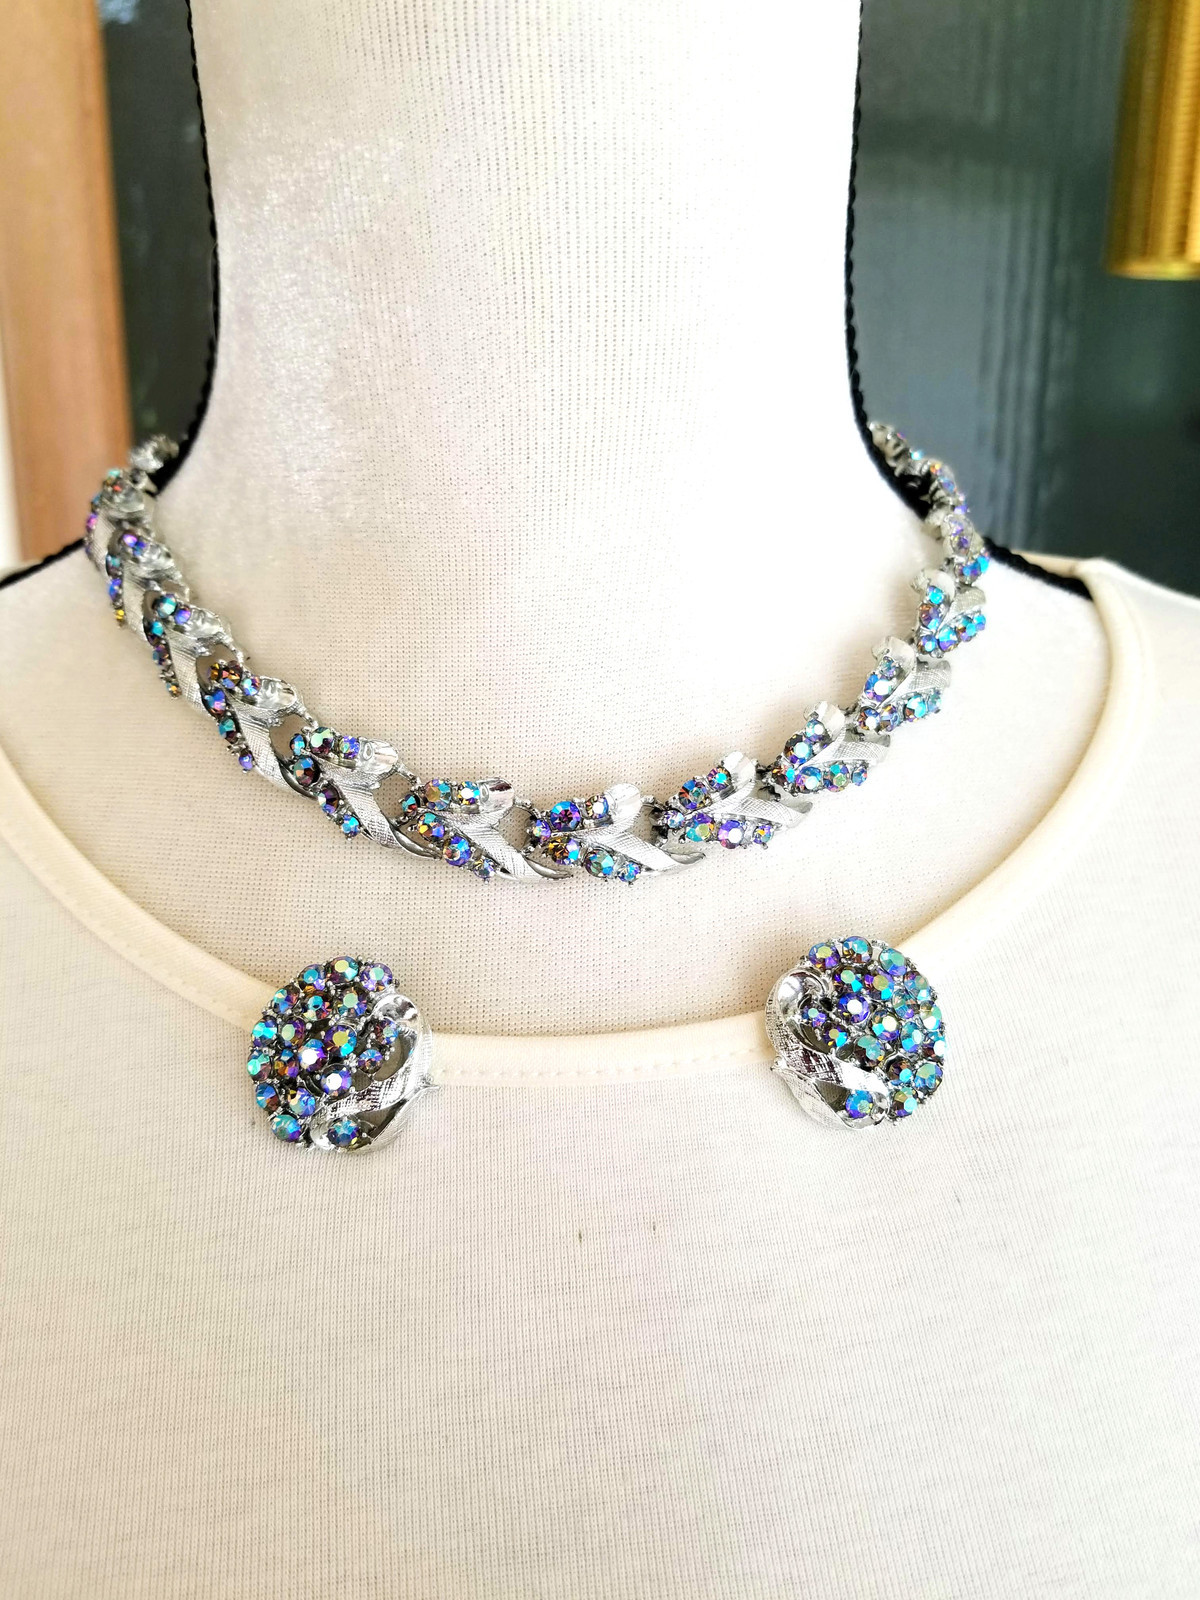 Vintage Blue AB Rhinestone Necklace and Earring Set, Brushed Silver Tone Metal